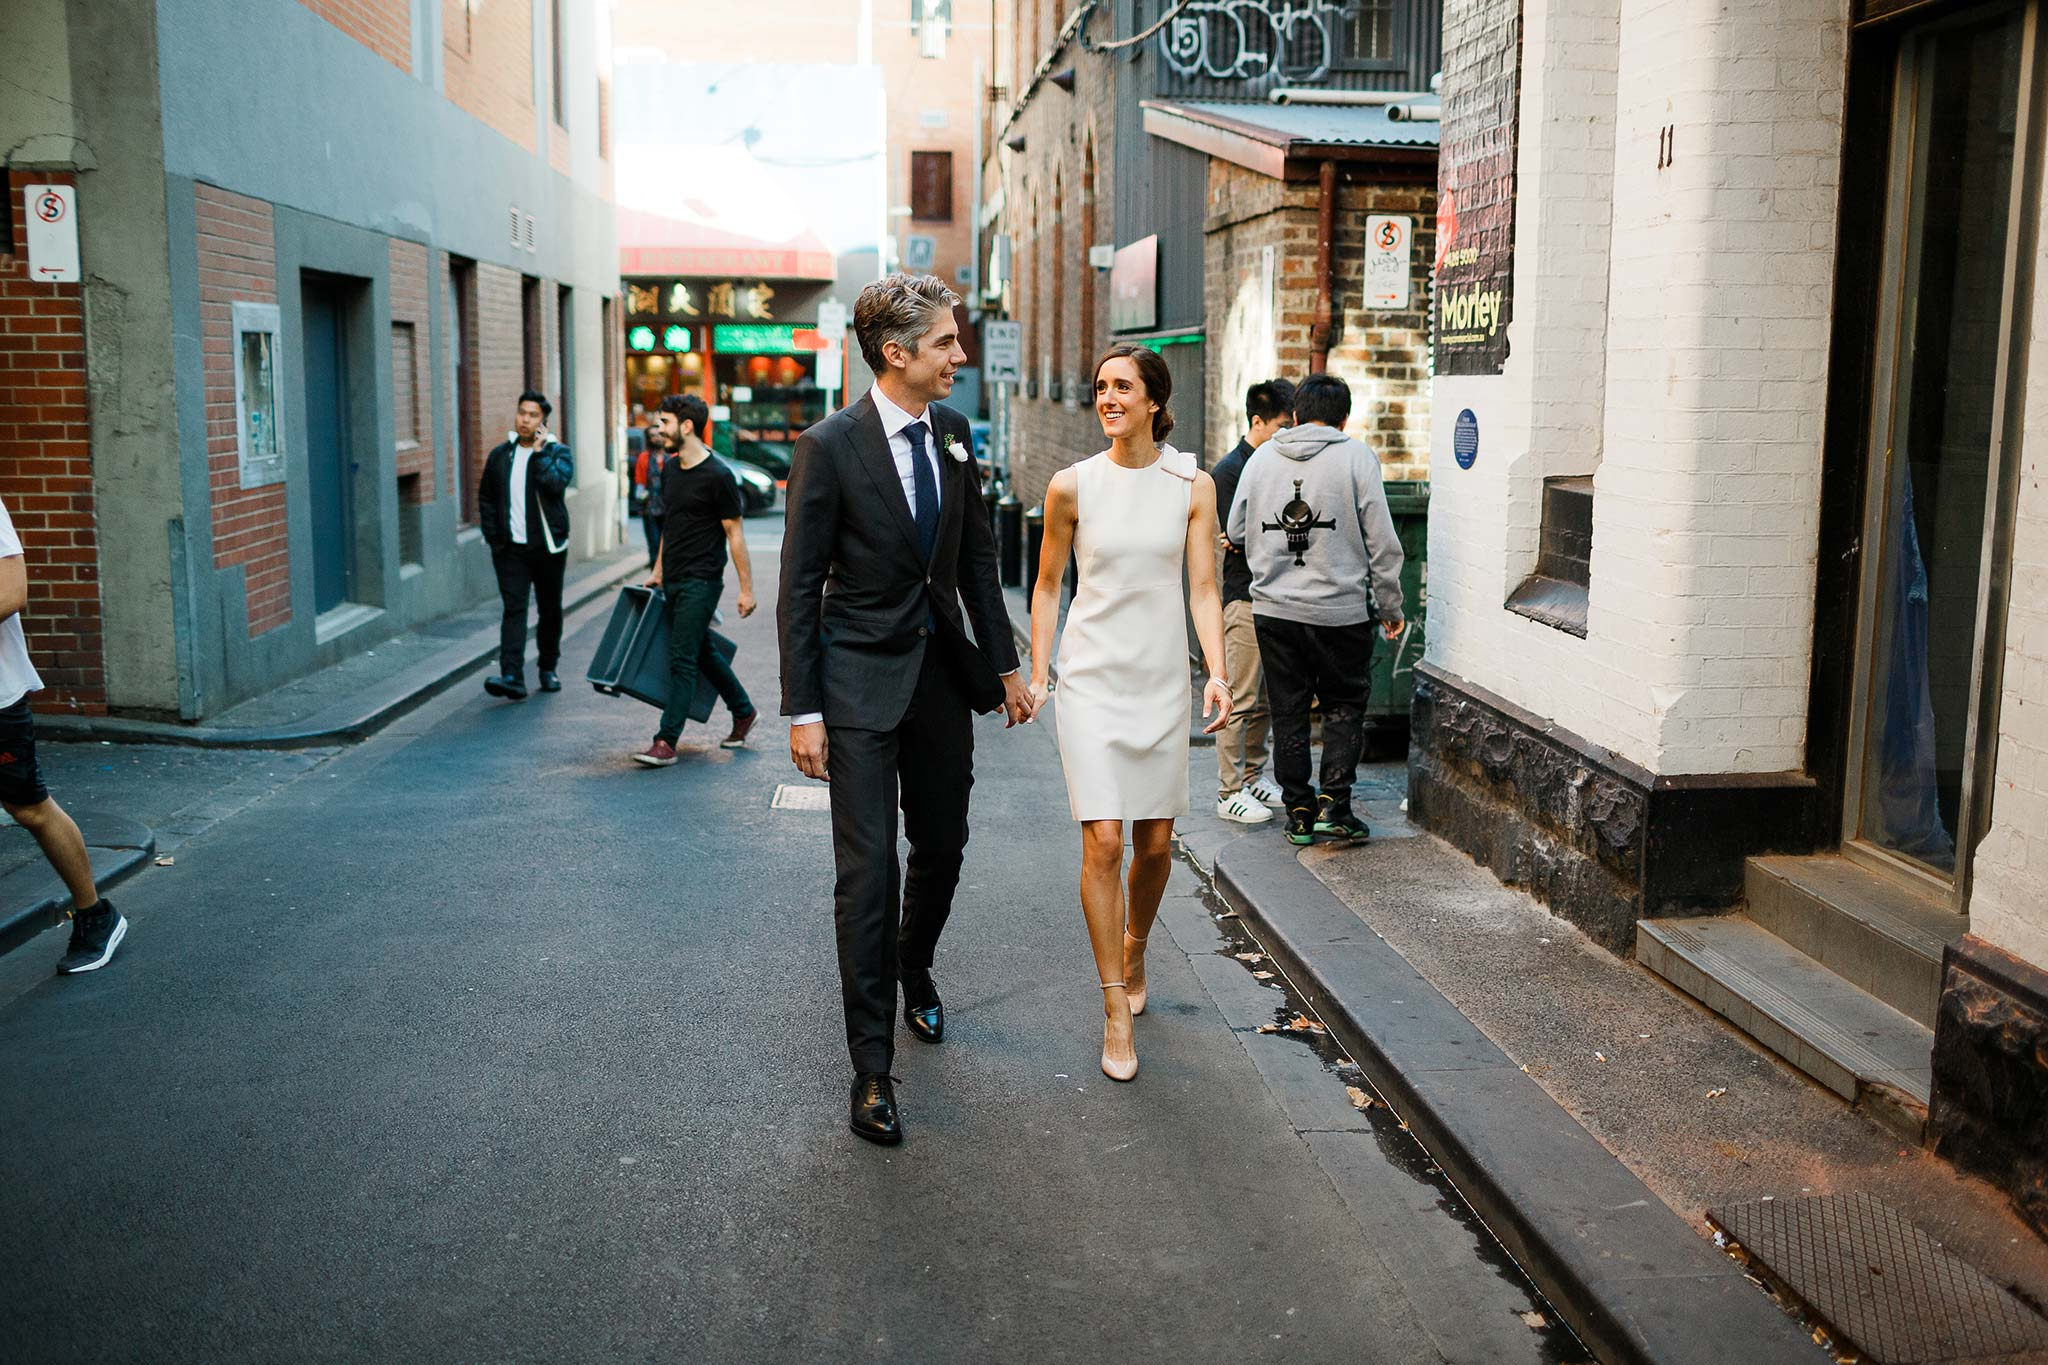 melbourne-wedding-chinatown-bride-groom-portrait